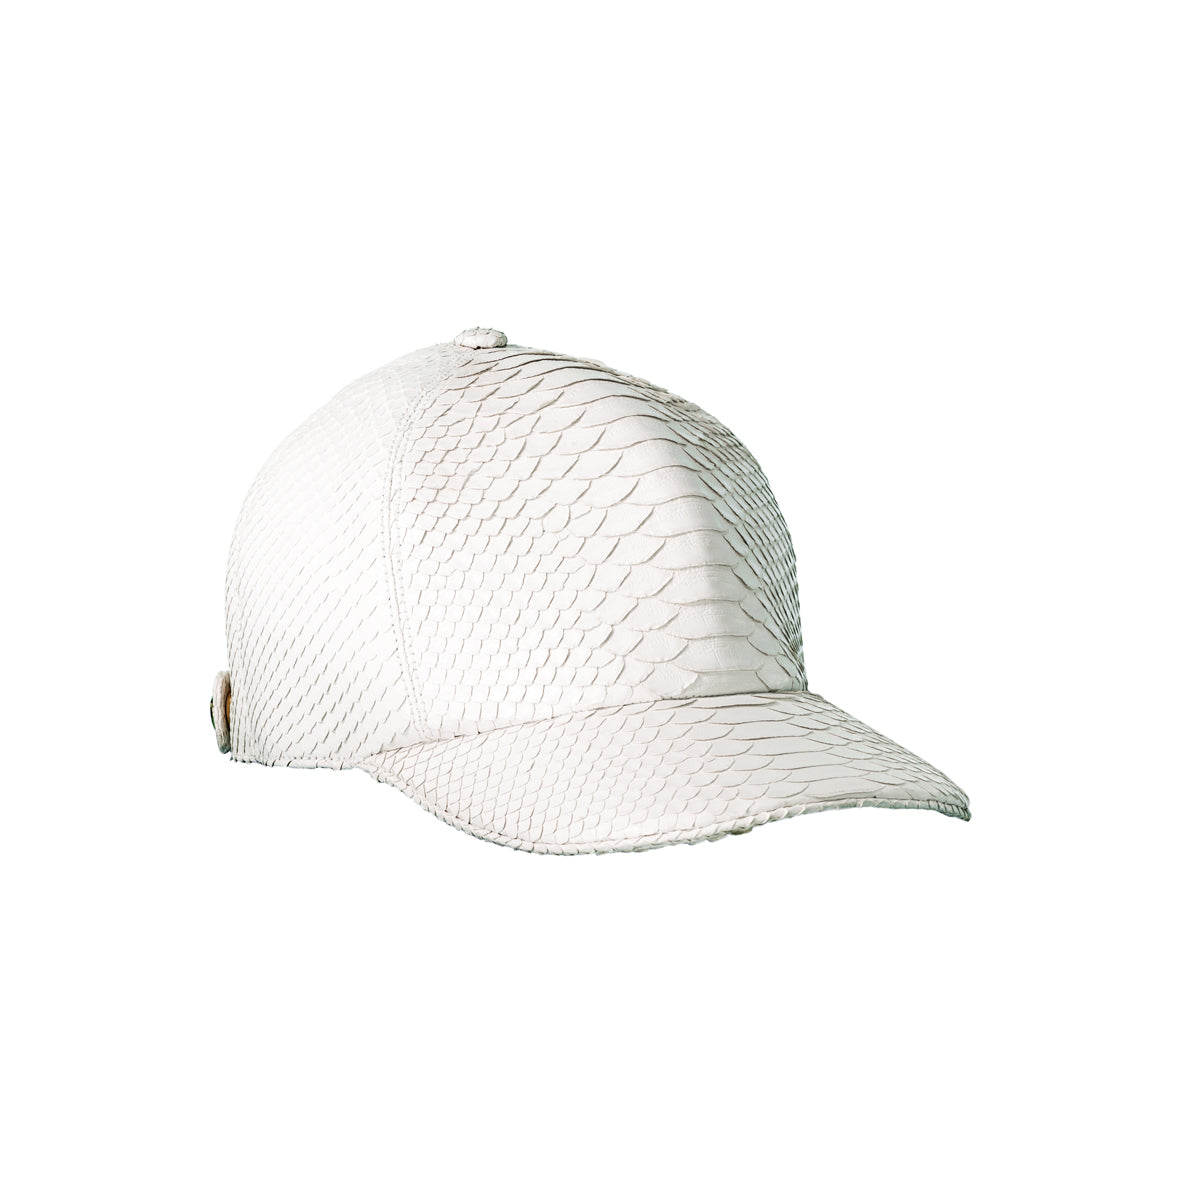 The Big Deep Baseball Hat - White Python